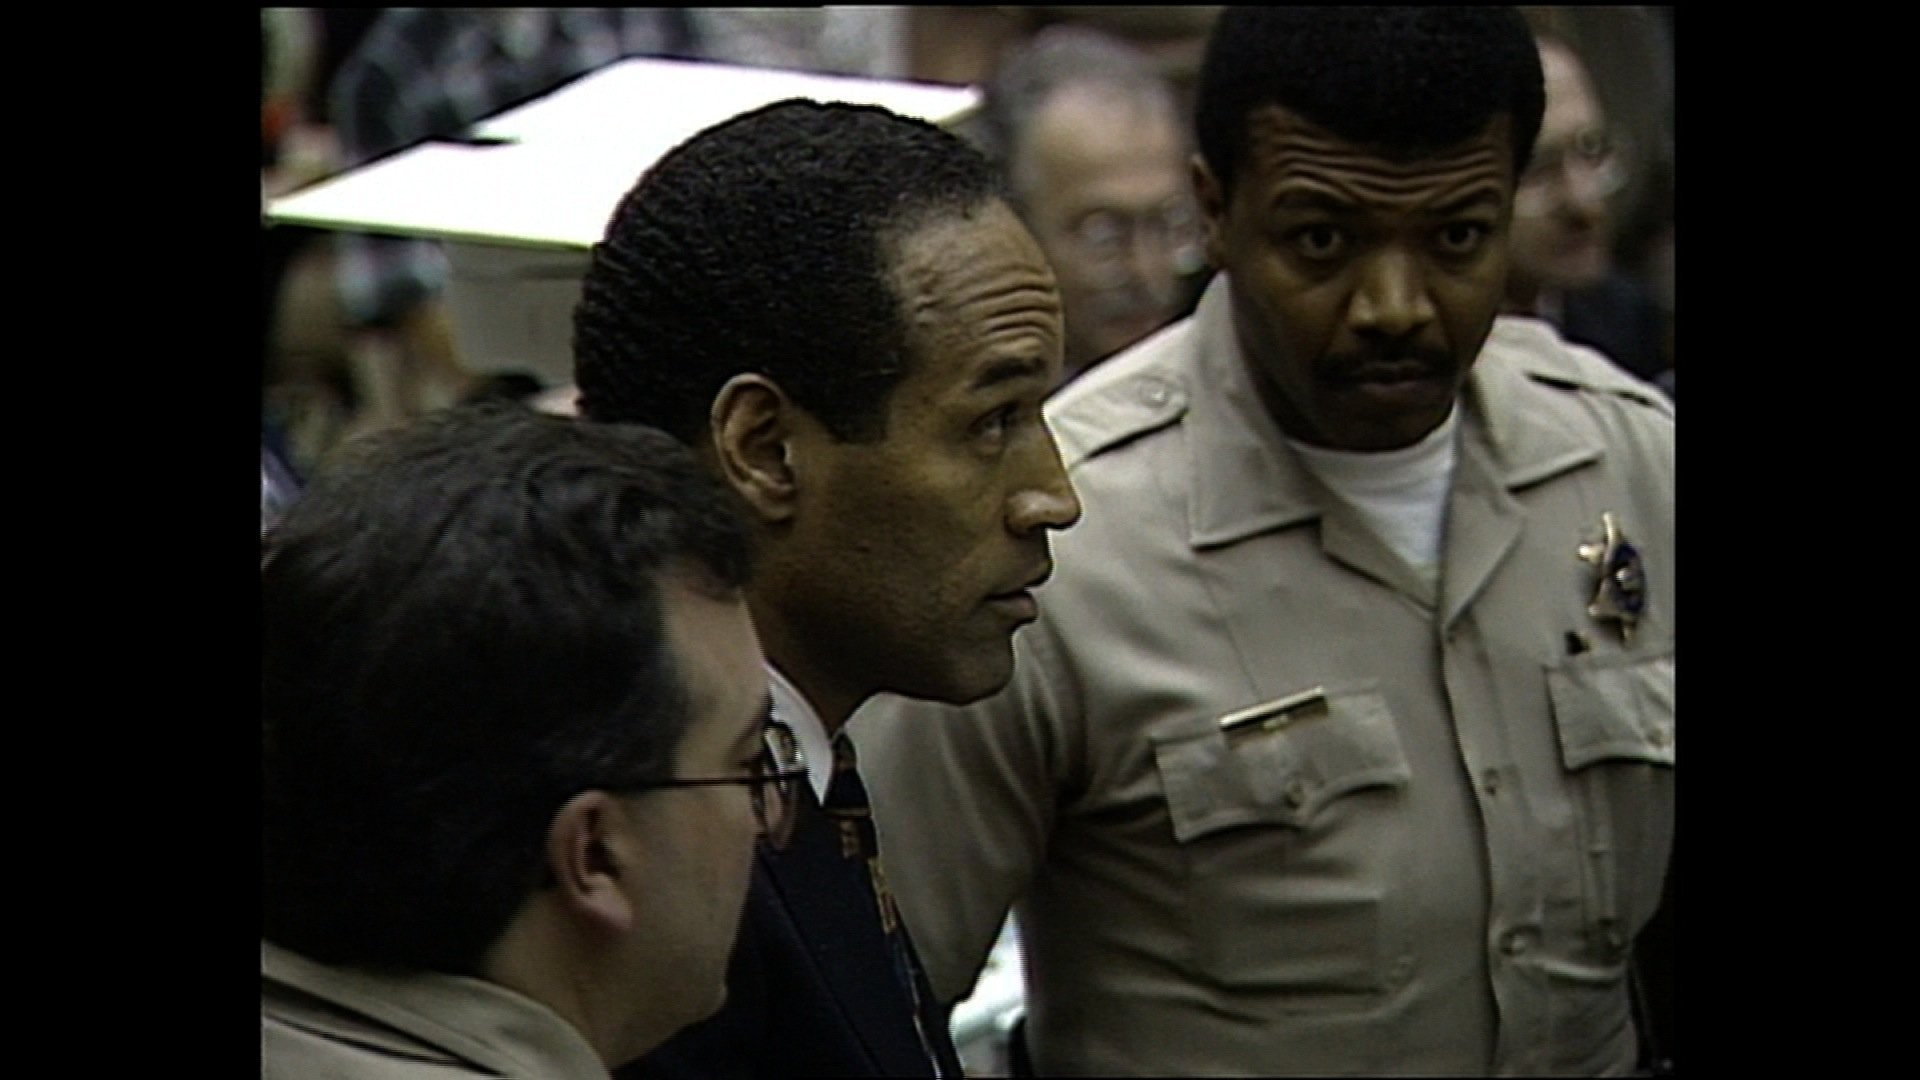 In 1995, O.J. Simpson went on trial for the killing of his ex-wife, Nicole Brown Simpson, and her friend Ronald Goldman, in what became a wall-to-wall televised proceeding.